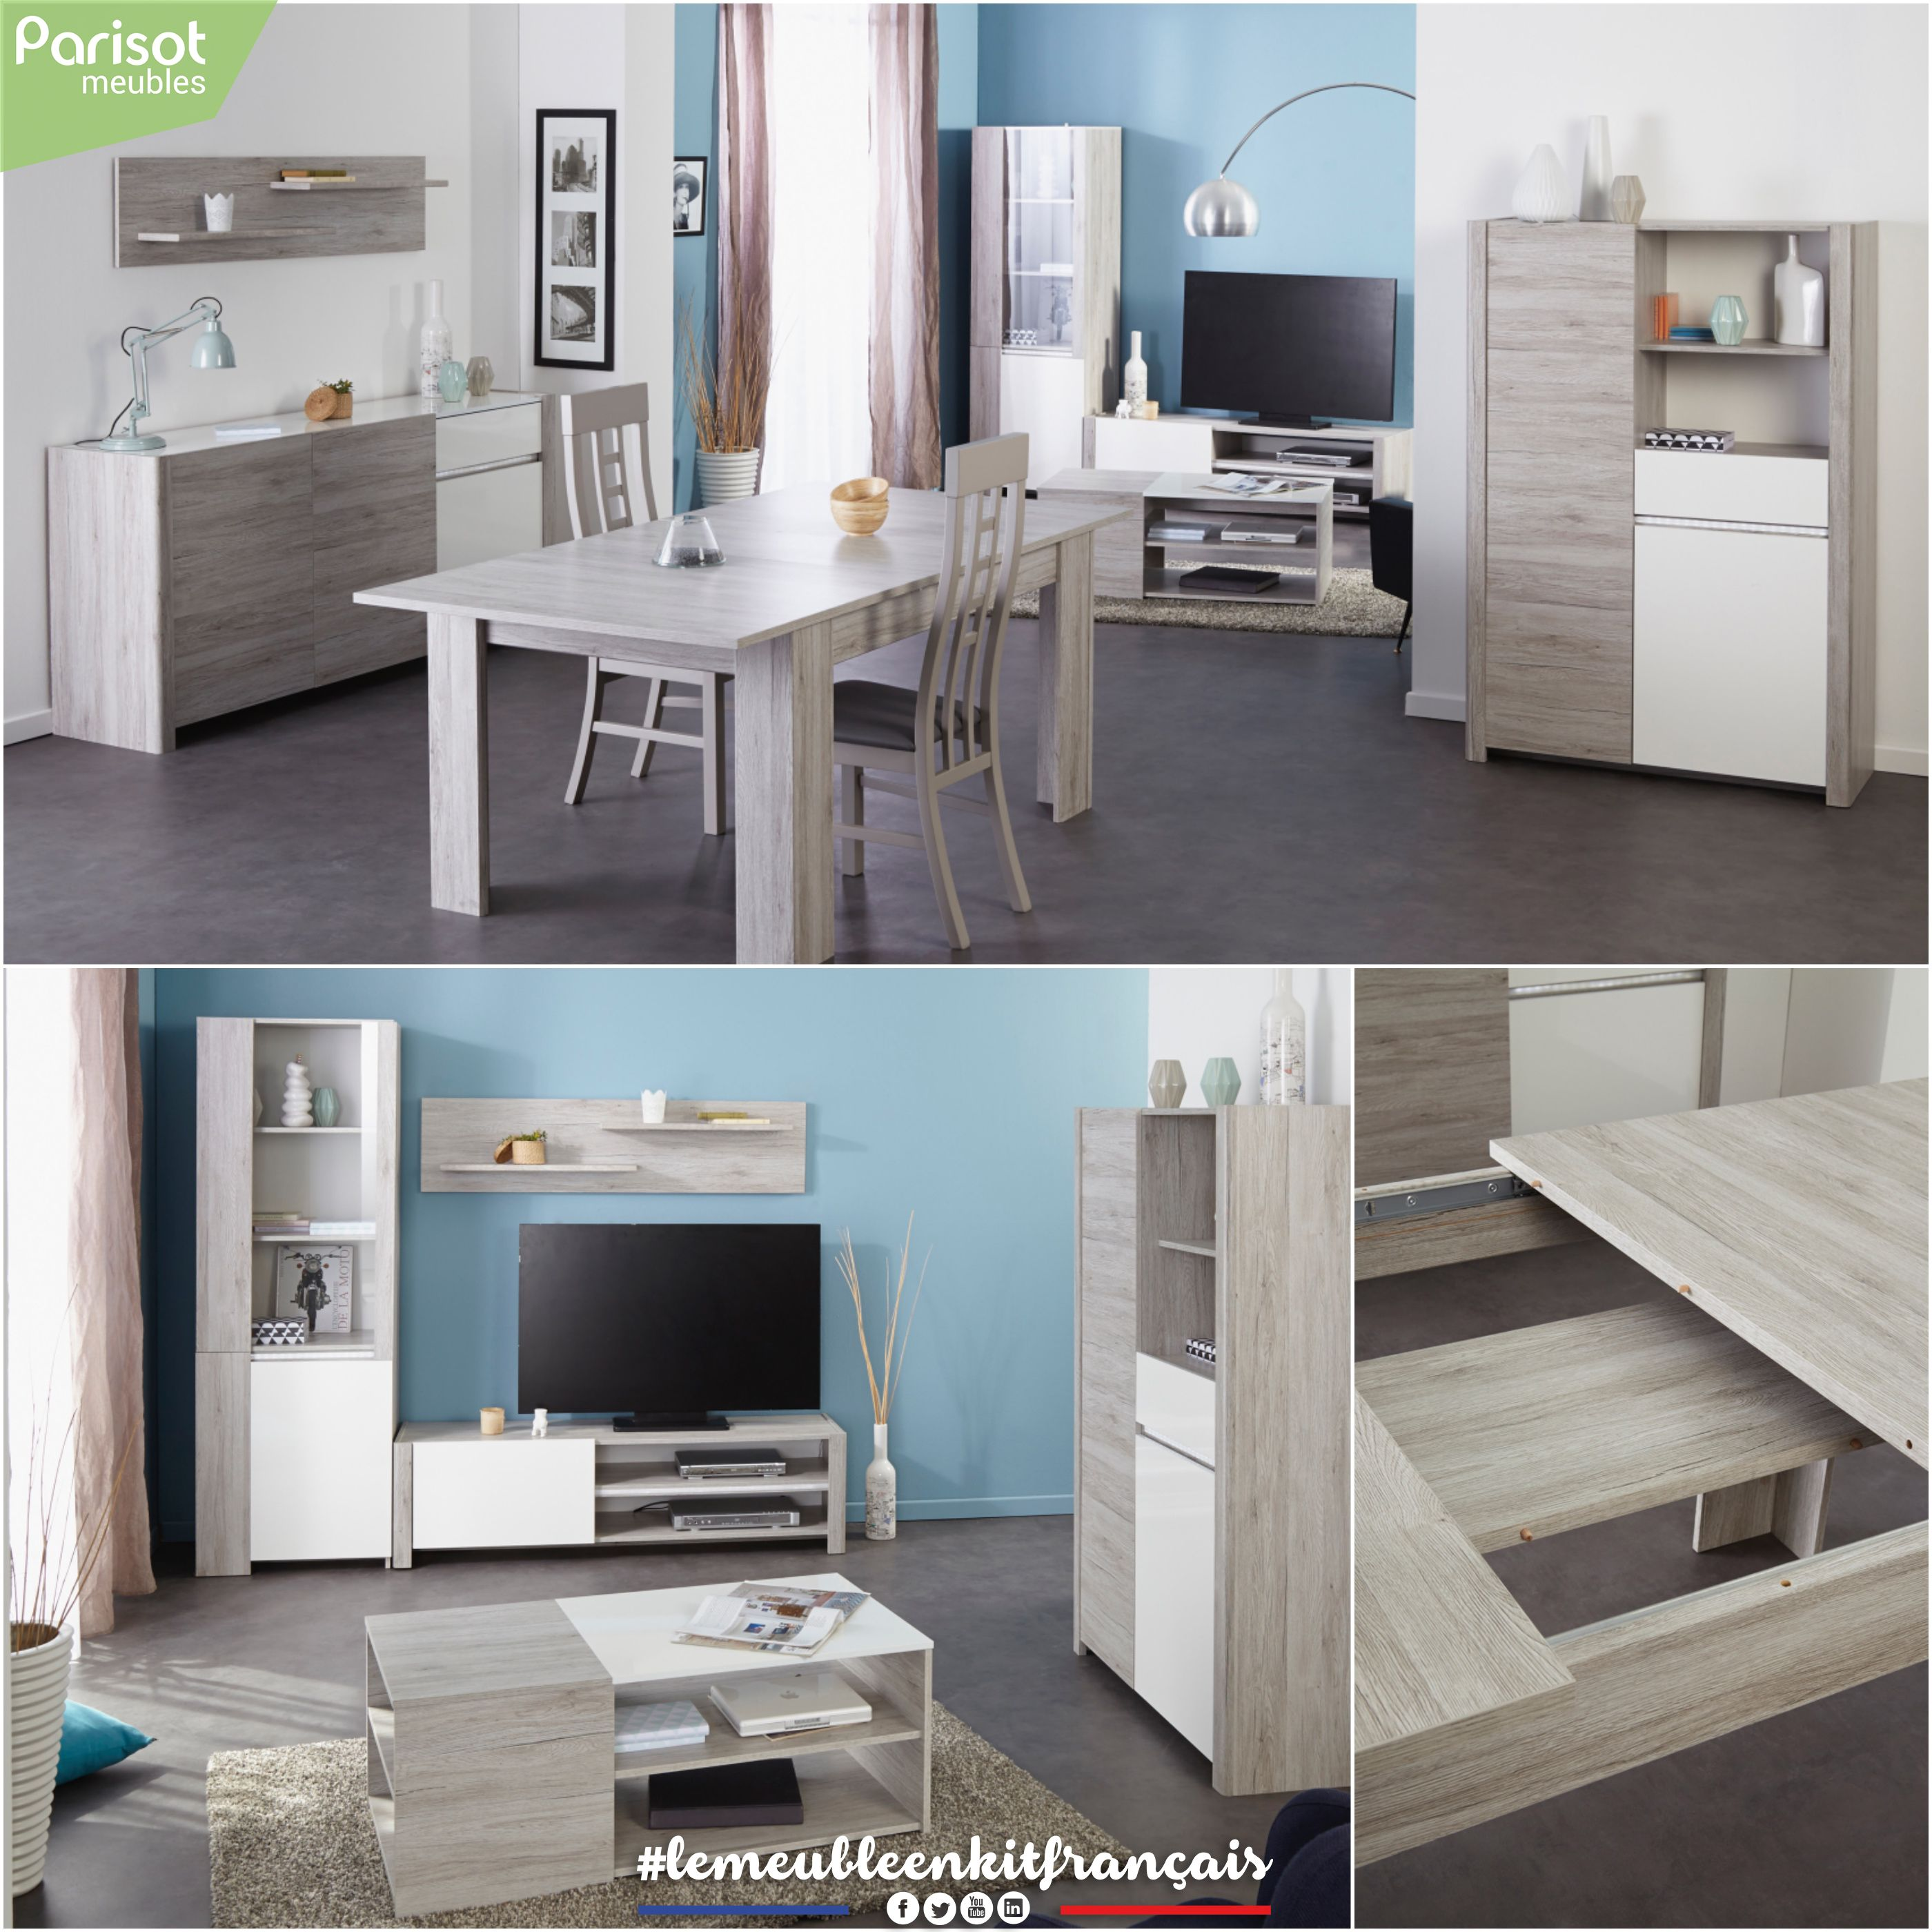 Luneo By Parisot Meubles A Living Room Of Quality With Decorative Molding And Lighting Ensures Contemporary Design At A Low Contemporary Design Decor Design